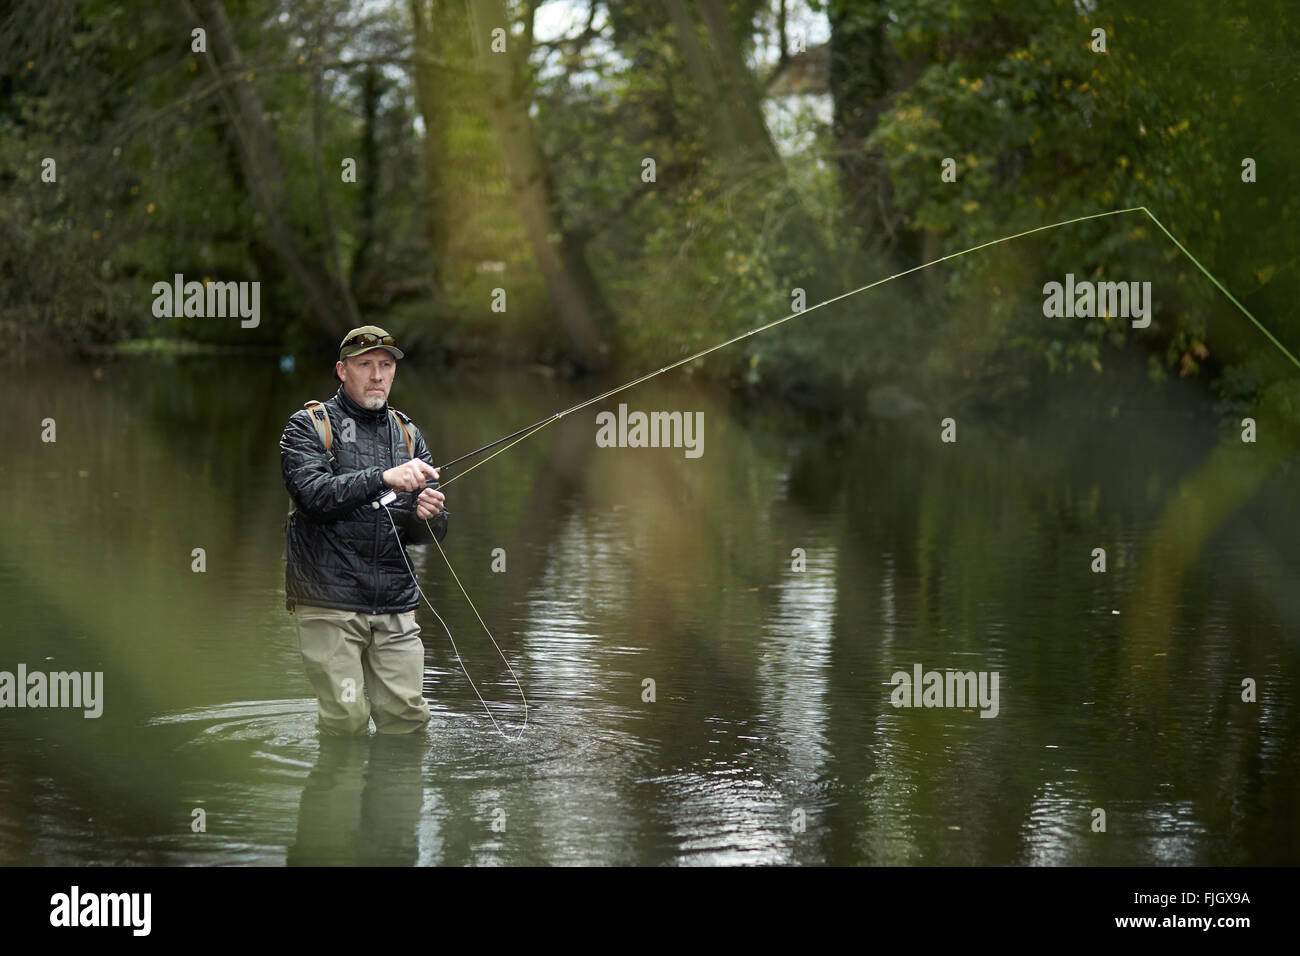 A man fly fishing in a river - London, UK - Stock Image